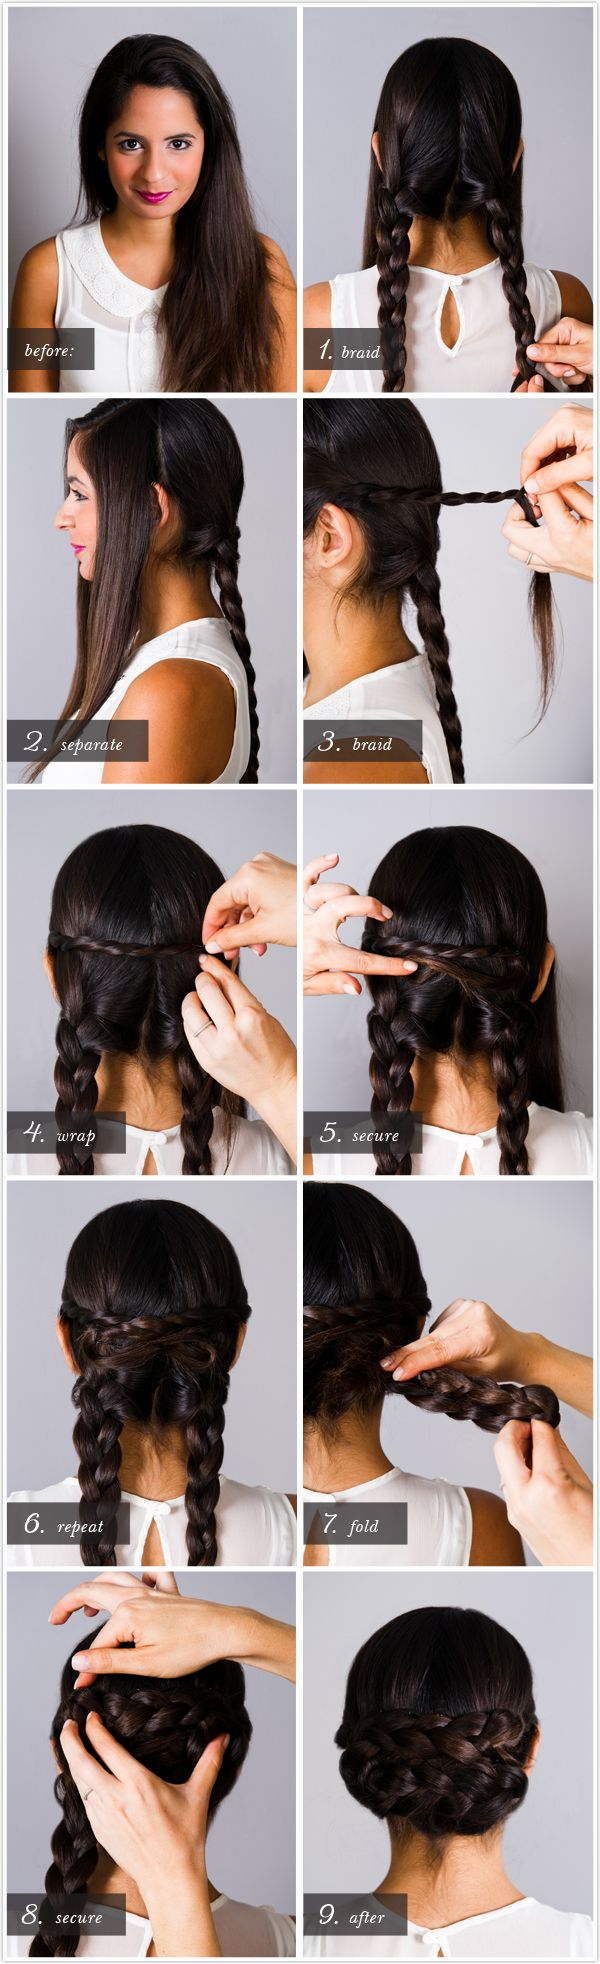 braided chignon: Hair Ideas, Hairstyles, Hair Tutorials, Braids Updo, Makeup, Long Hair, Longhair, Hair Style, Braids Buns